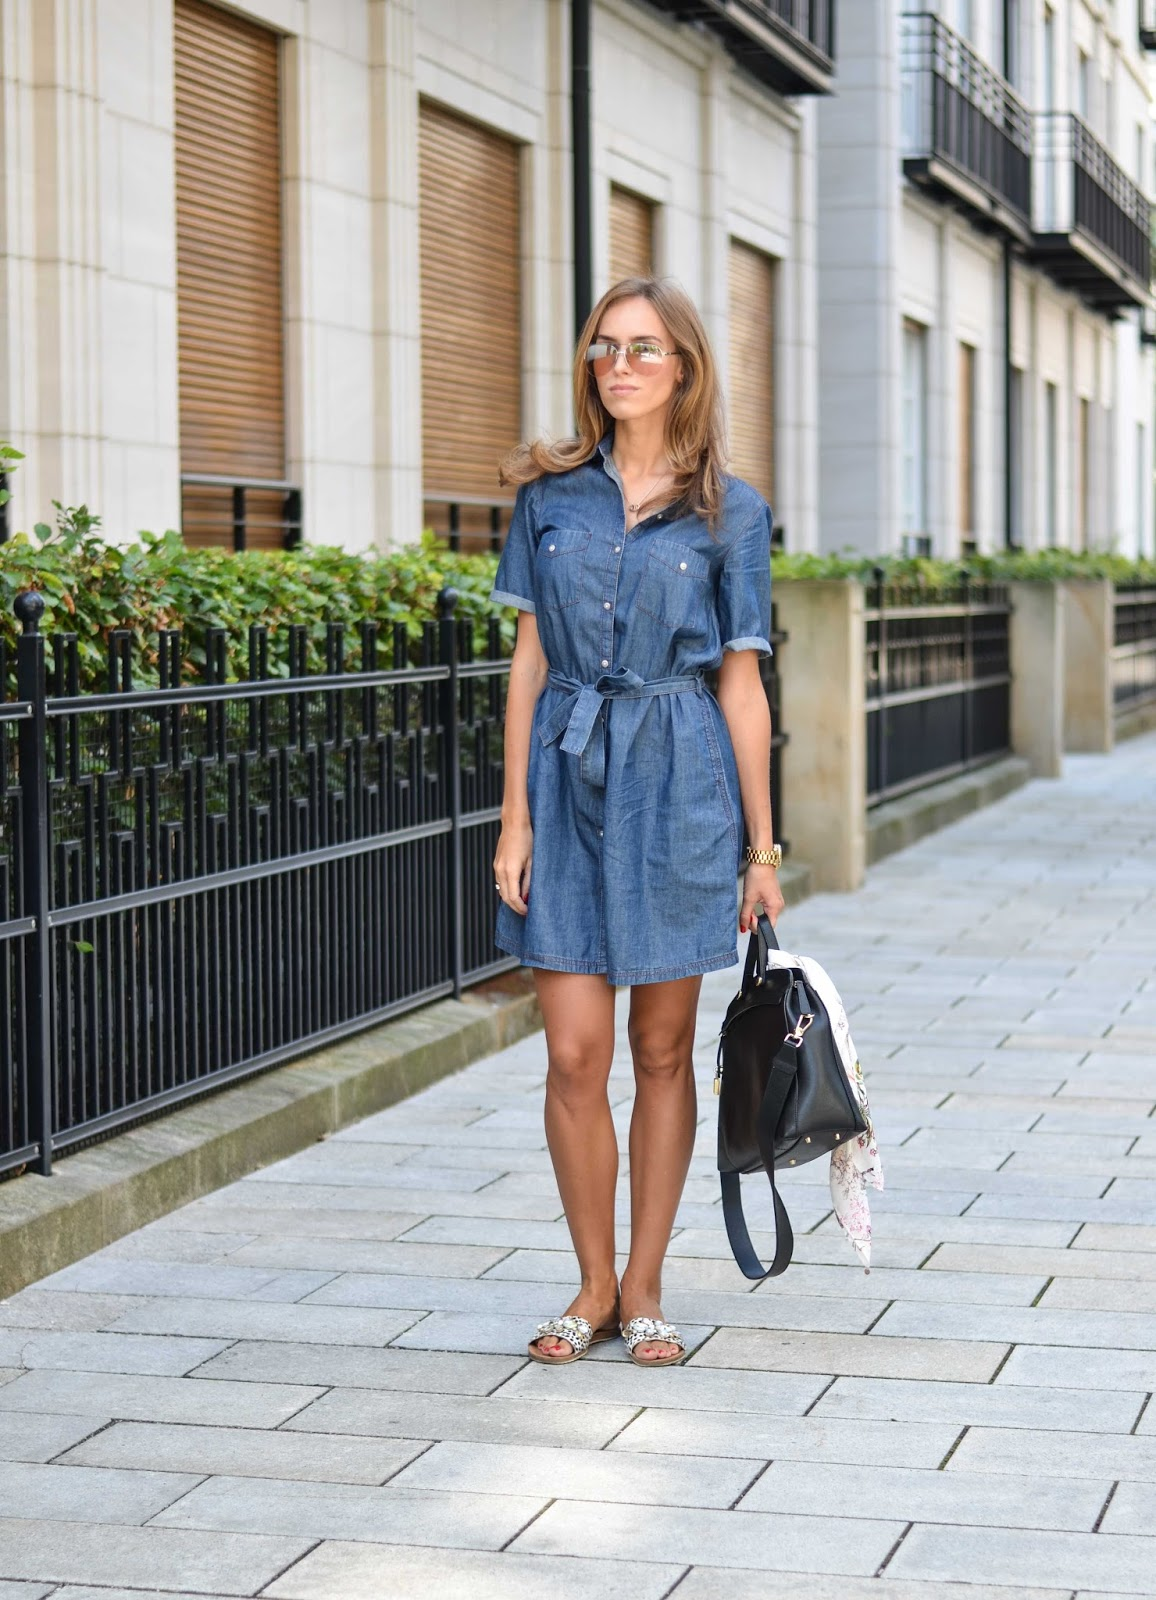 kristjaana mere lindex denim dress fall outfit fashion blogger munich